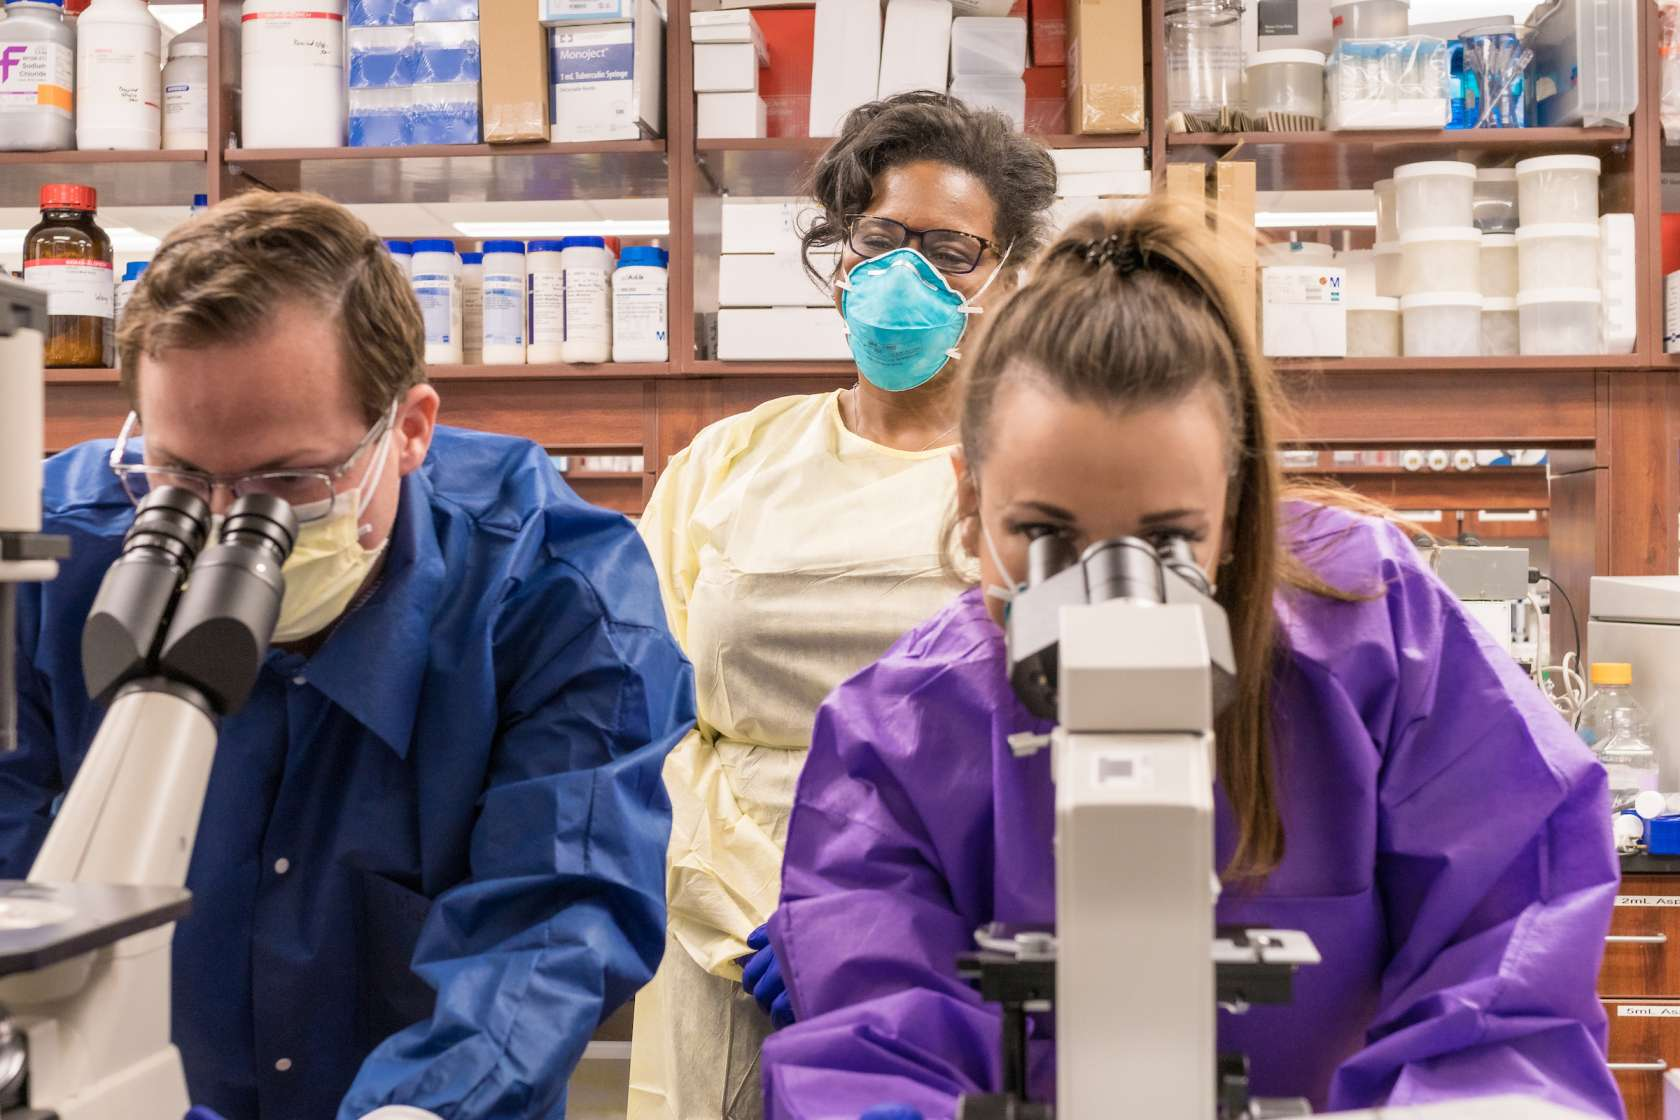 Two students look into microscopes while a female researcher watches them from behind.